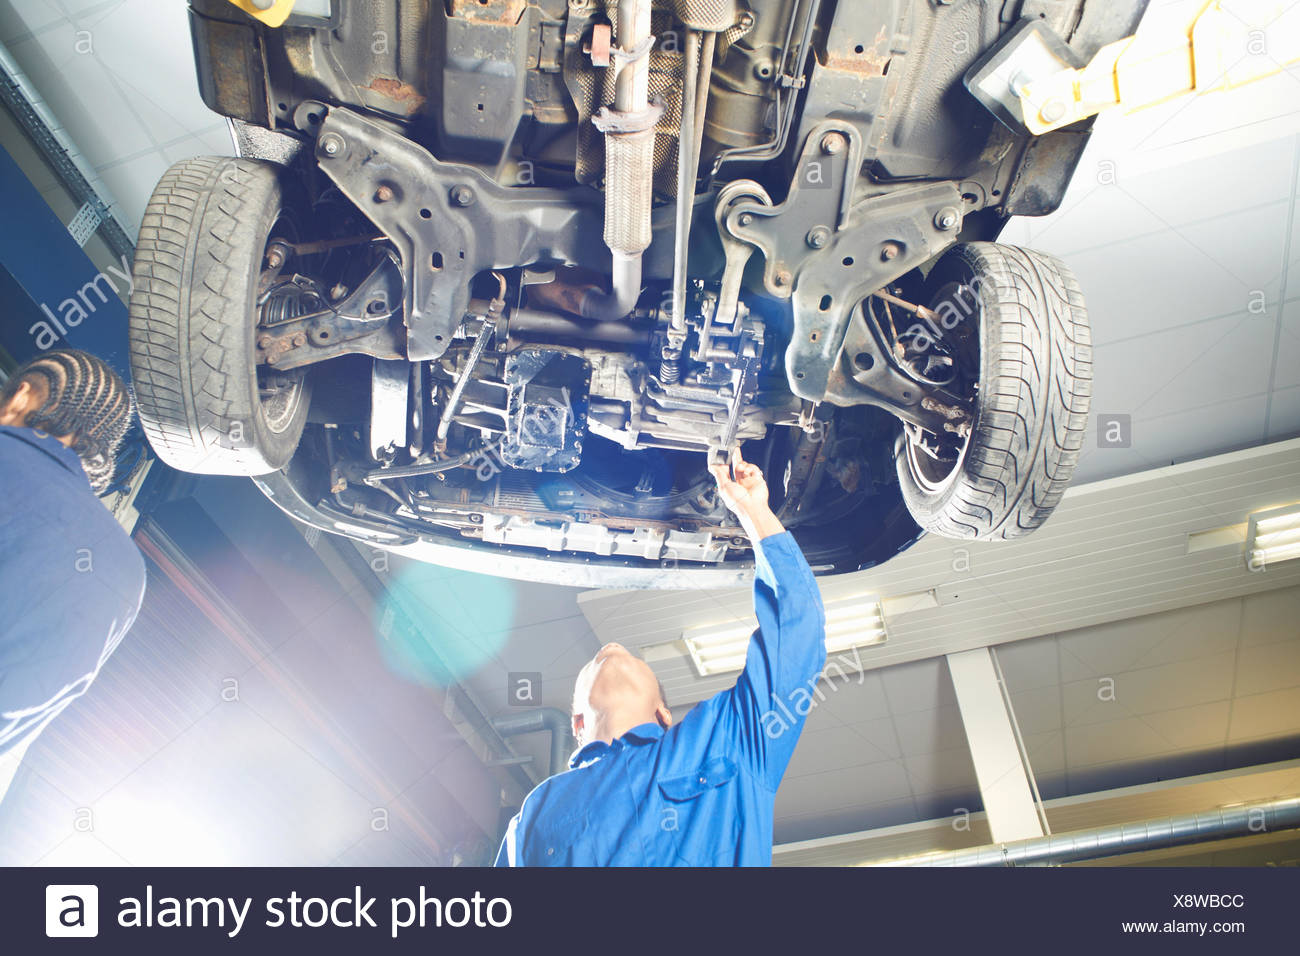 Male college student looking up at car in garage workshop - Stock Image